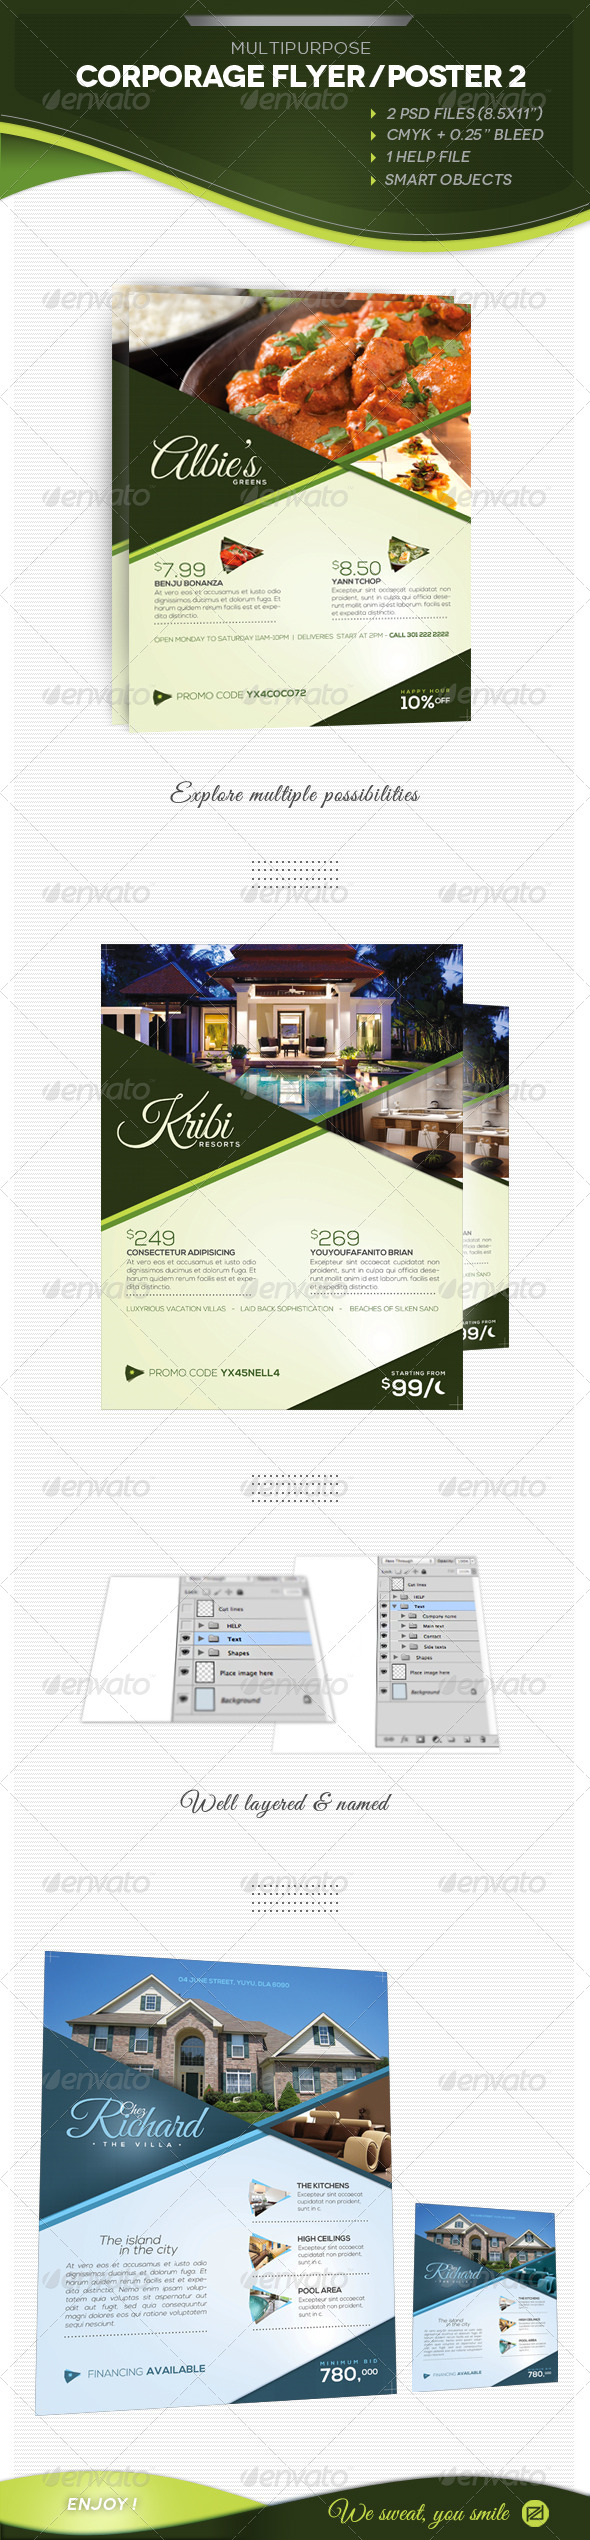 Multipurpose Corporate Flyer 2 - Corporate Flyers